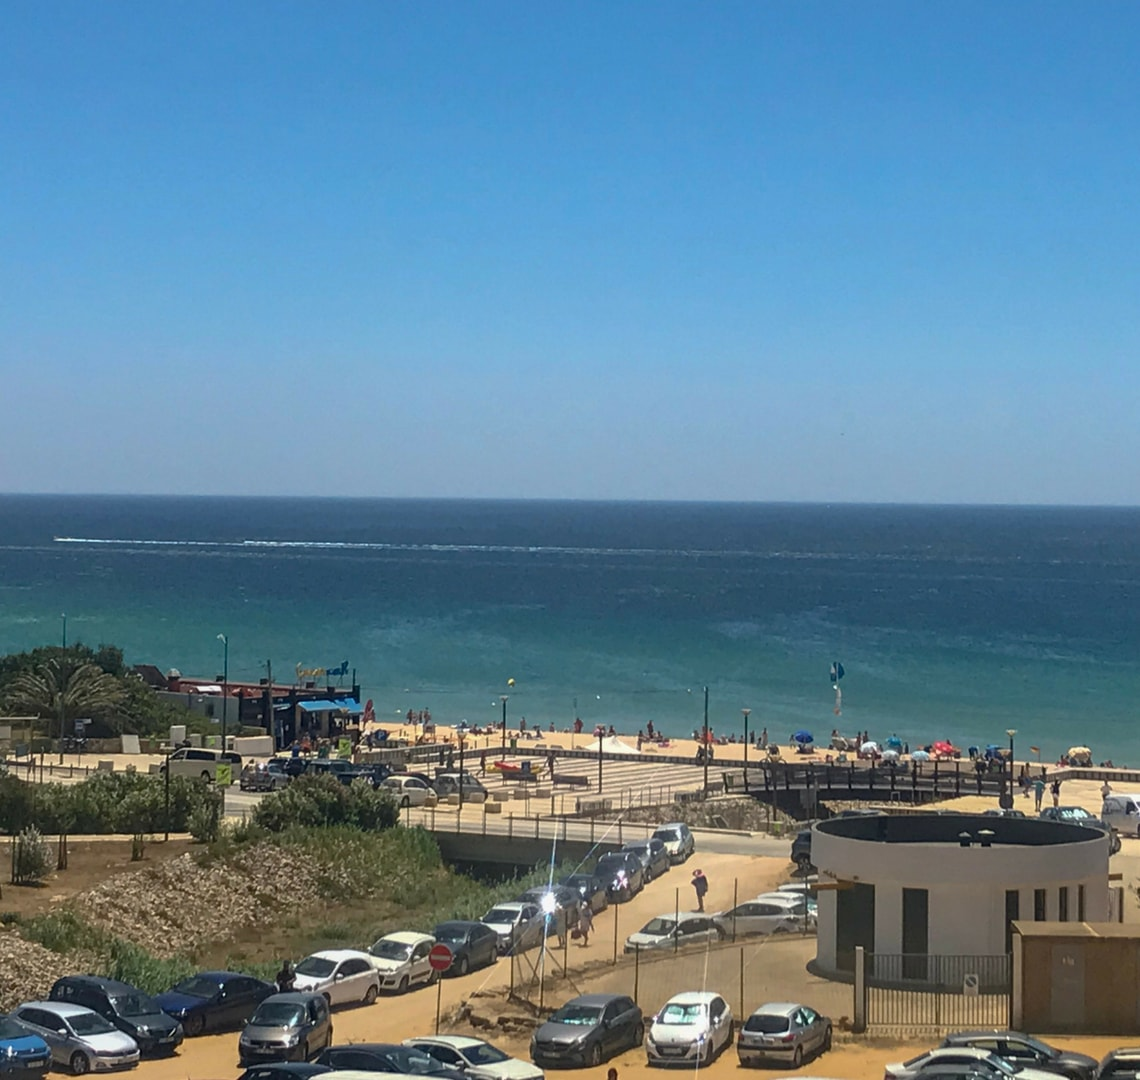 Super fun things to do in Lagos - view of Porto de Los beach from our villa